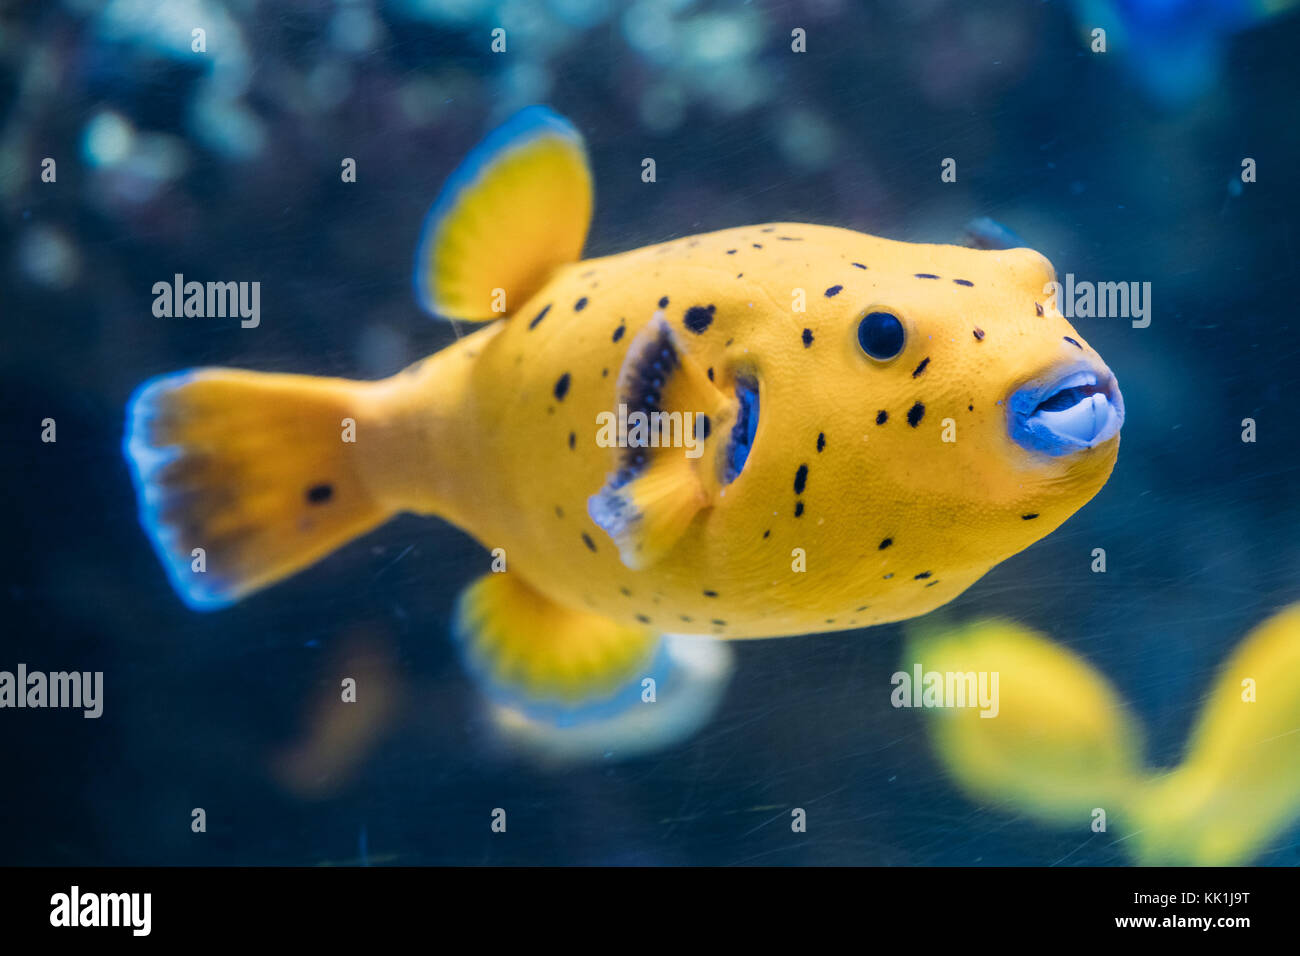 Pufferfish close up stock photos pufferfish close up for Water dogs fish